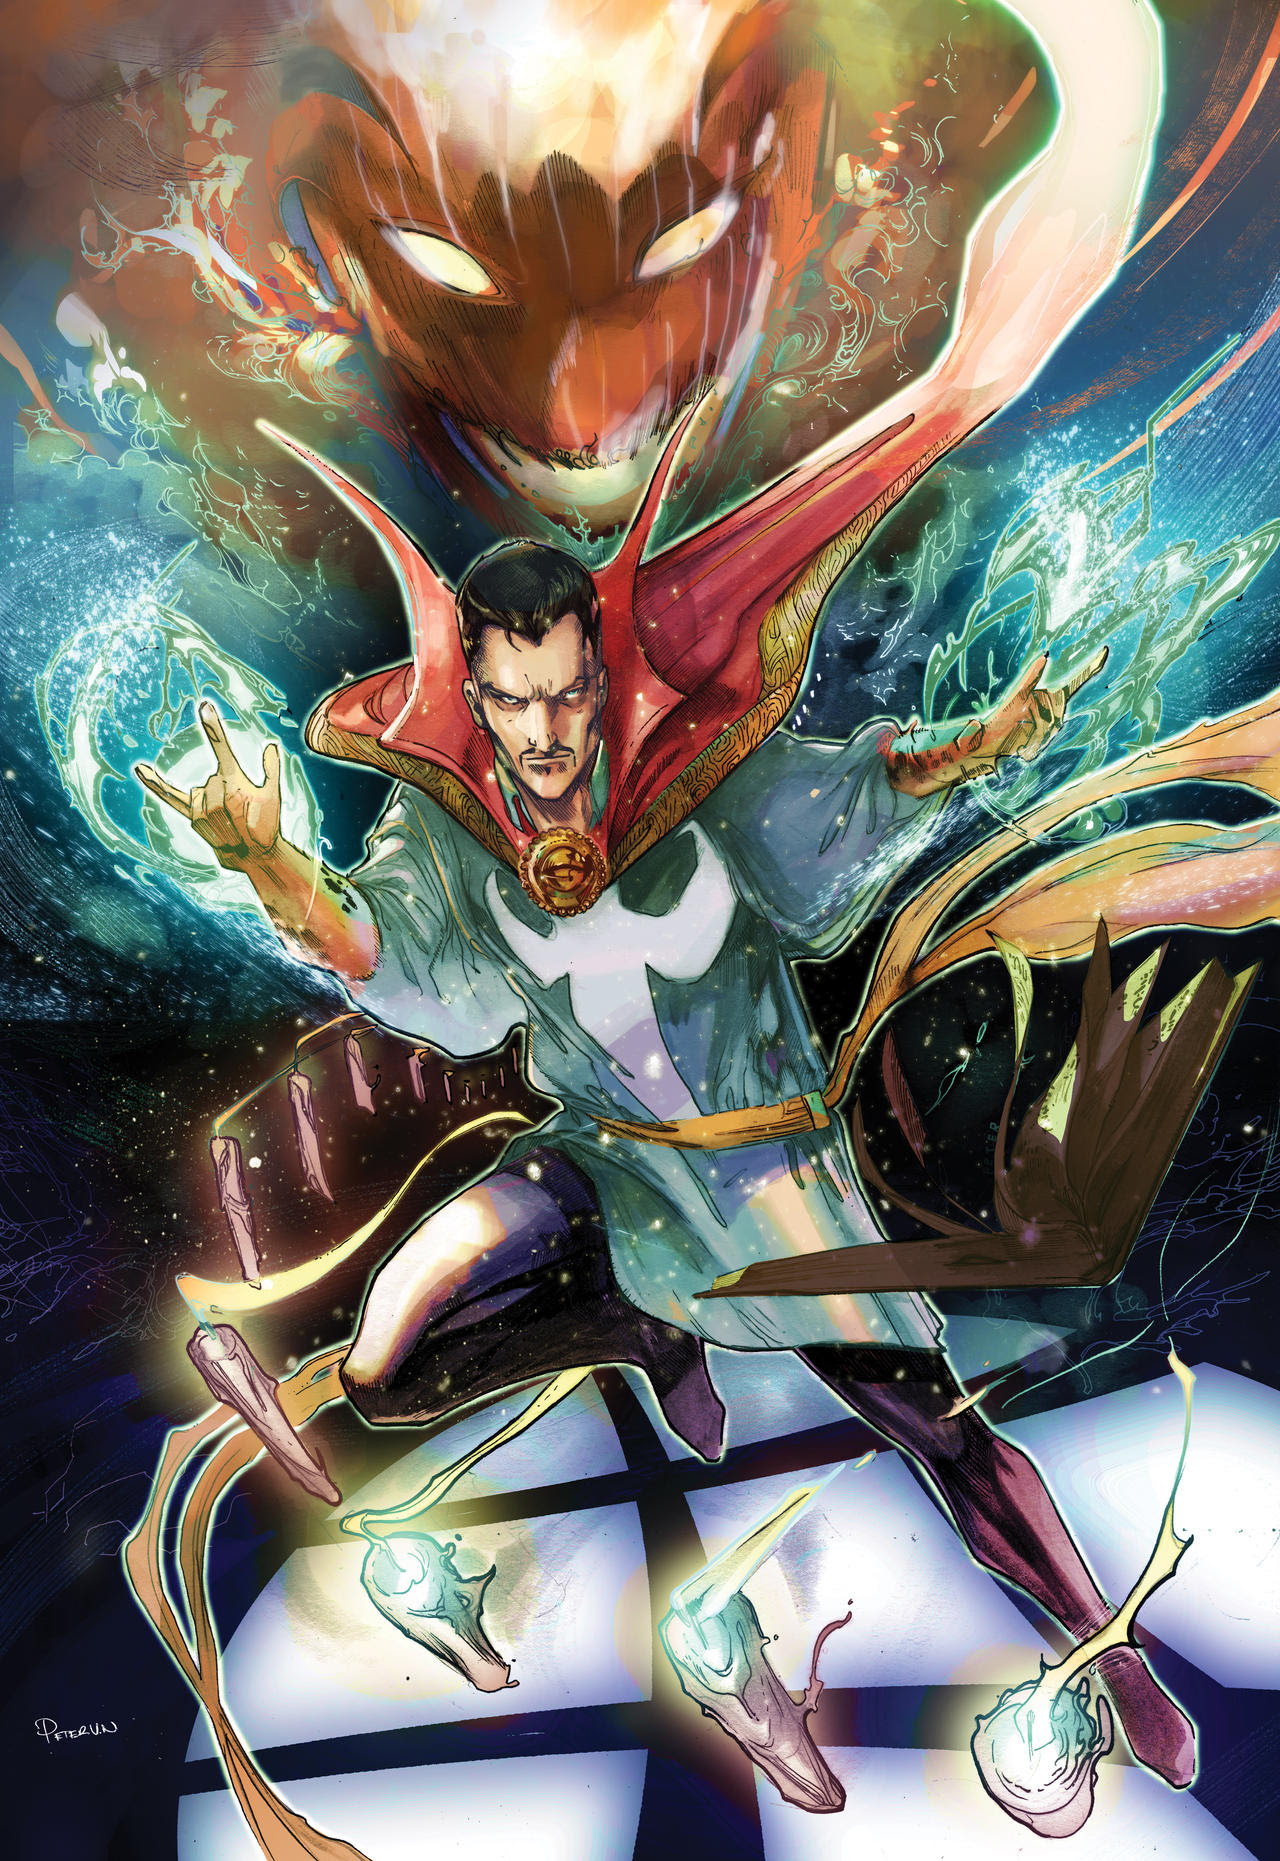 http://fc00.deviantart.net/fs70/i/2013/262/8/6/doctor_strange_colored_vs_dormmanu_by_peter_v_nguyen-d69zu8w.jpg